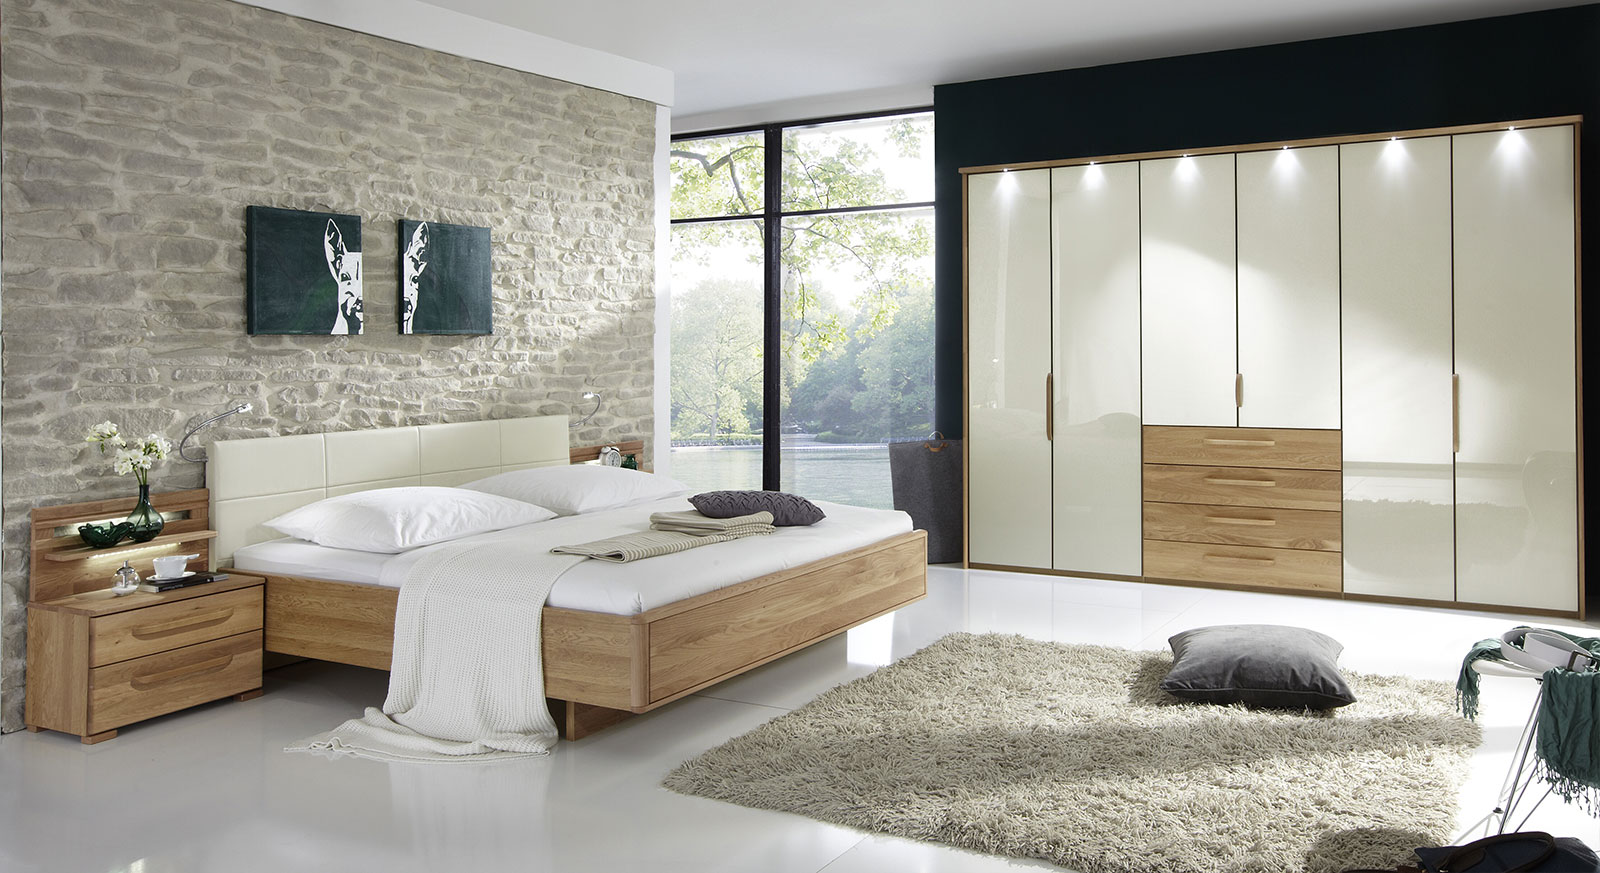 komplett schlafzimmer mit eiche und glas morley magnolie. Black Bedroom Furniture Sets. Home Design Ideas